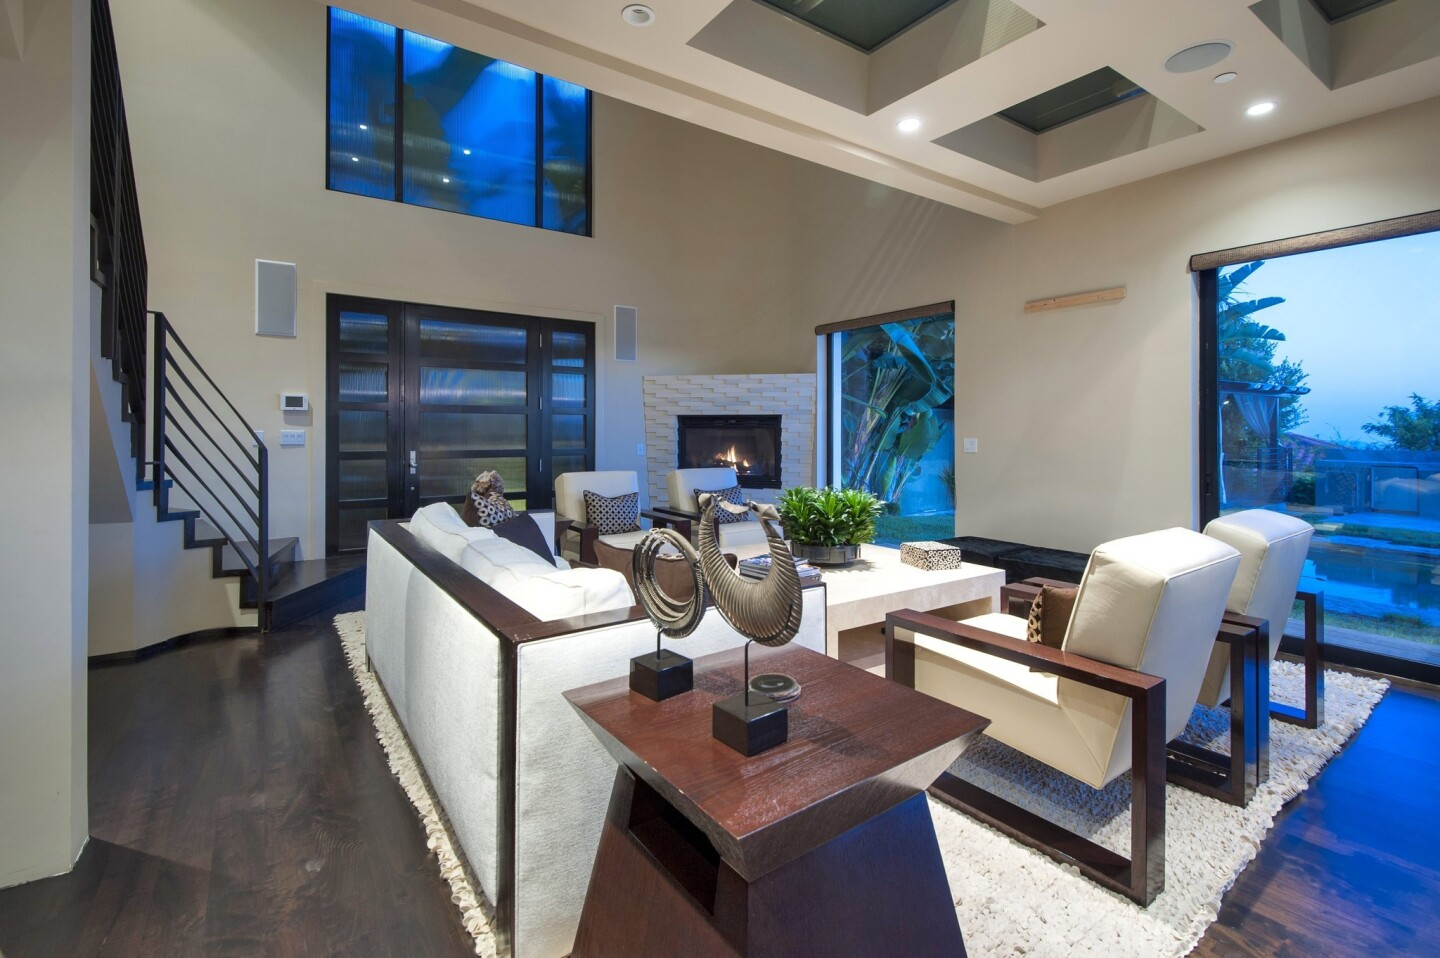 Reggie Bush, the former USC tailback who plays pro football with the Detroit Lions, has put his home up for sale in Hollywood Hills West.